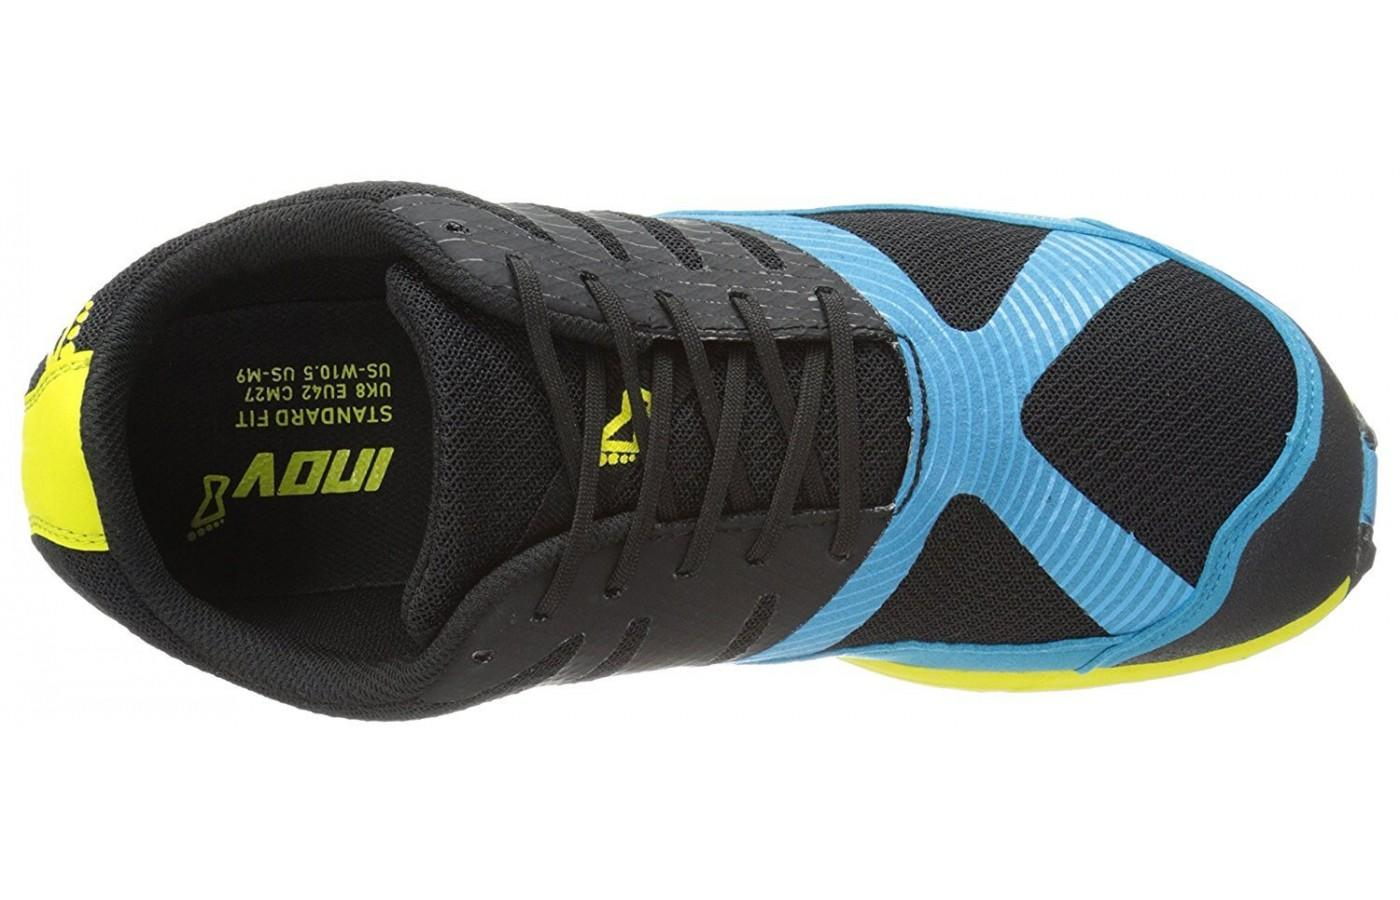 The Inov-8 Terraclaw 250 has synthetic mesh for lightweight breathability